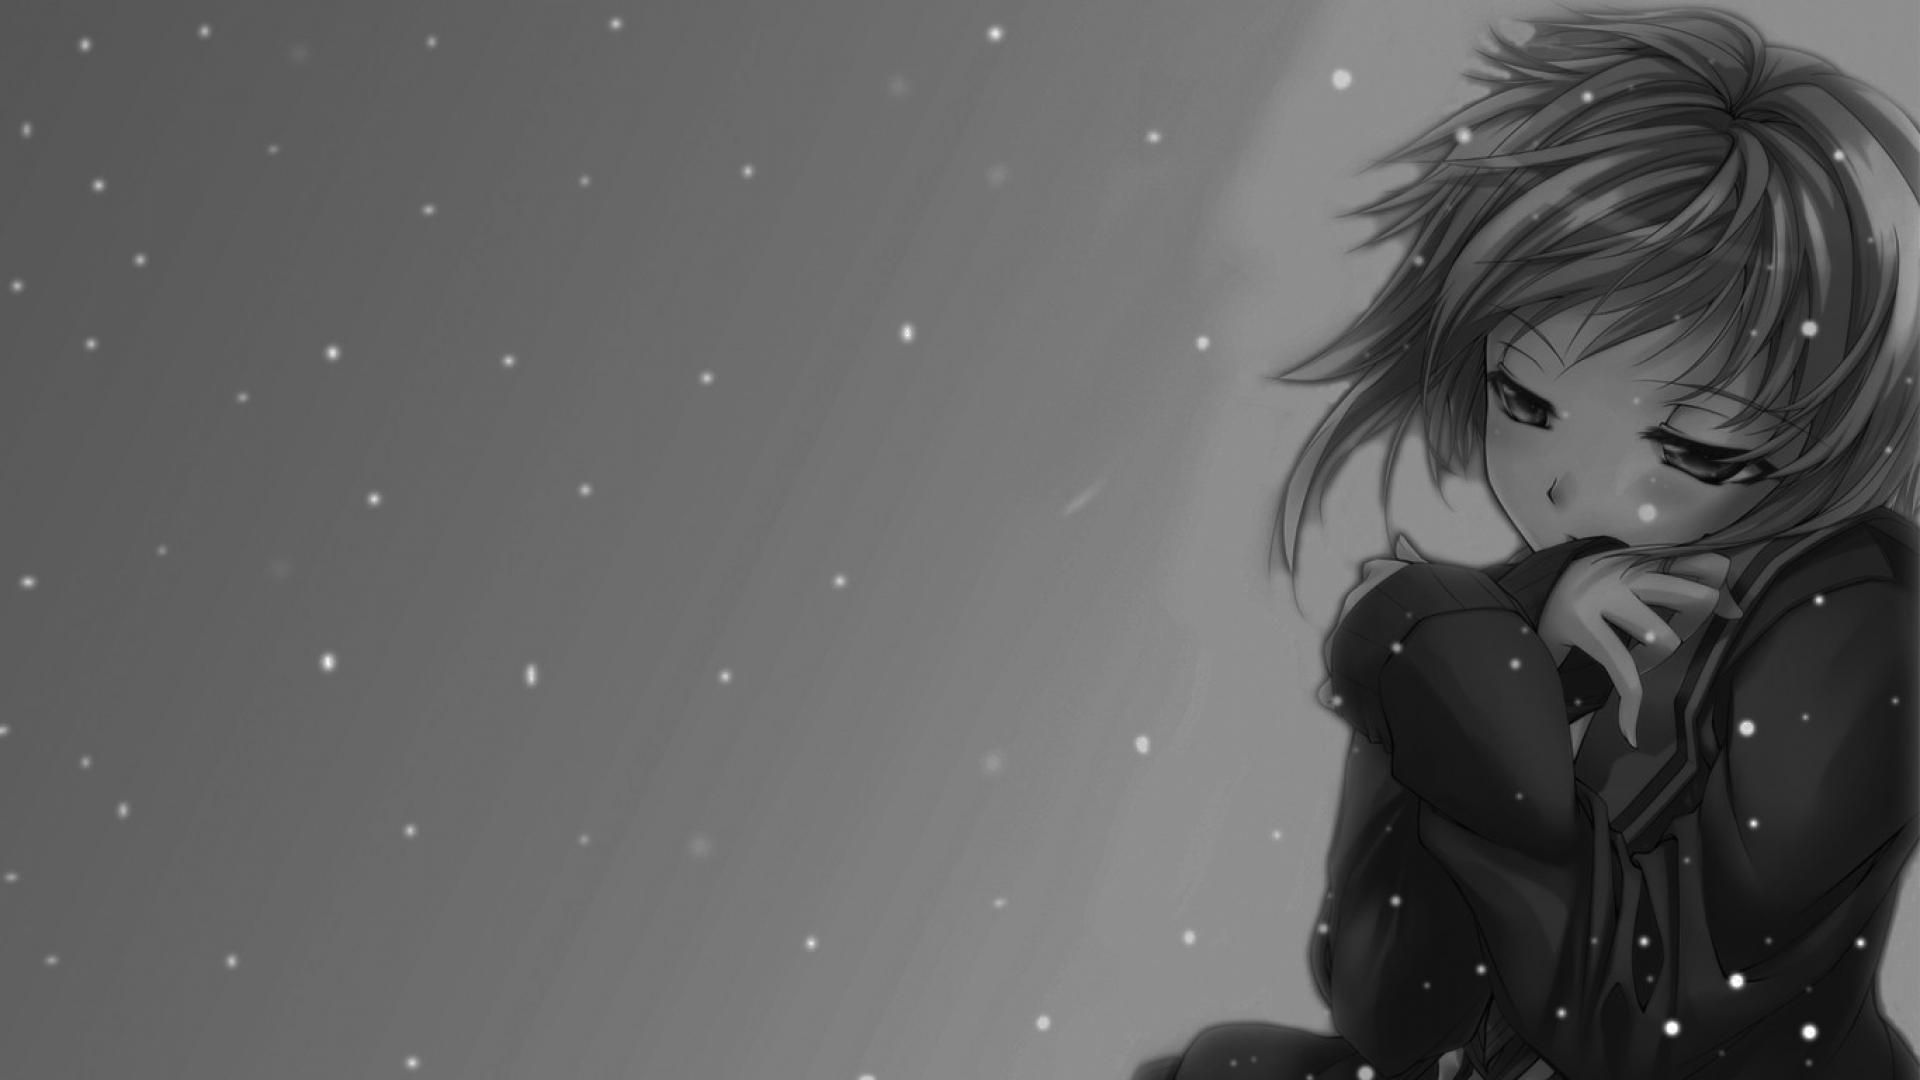 Grayscale Anime Wallpapers Top Free Grayscale Anime Backgrounds Wallpaperaccess